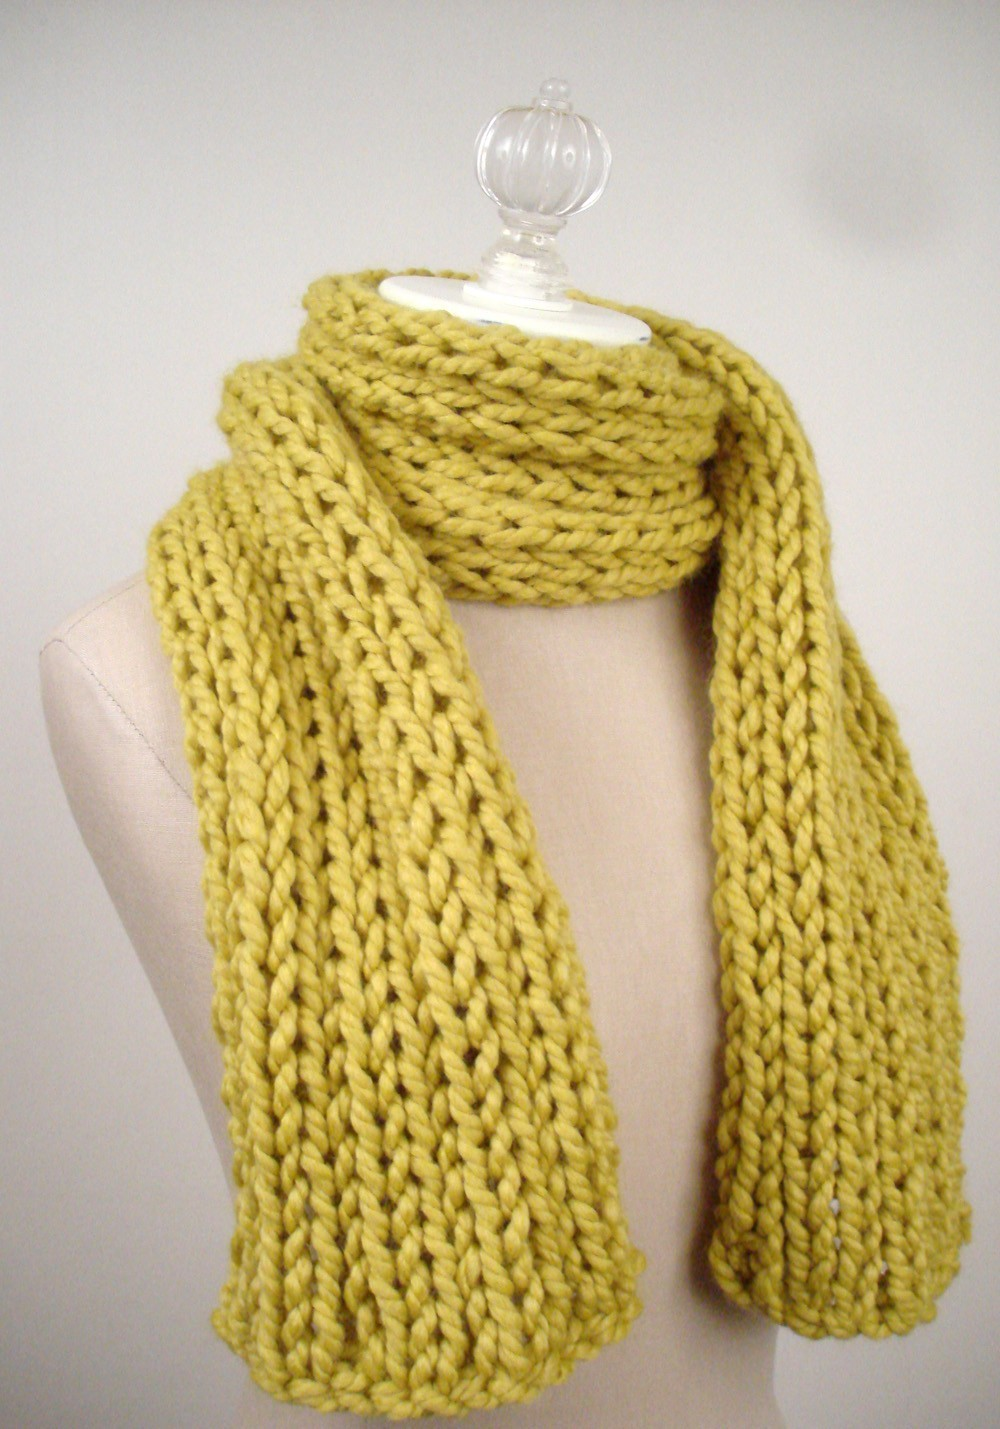 Scarf Knitting Pattern : Fun Fur Scarf Free Knitting Pattern Knit For A Cause Fun Fur Scarf ...